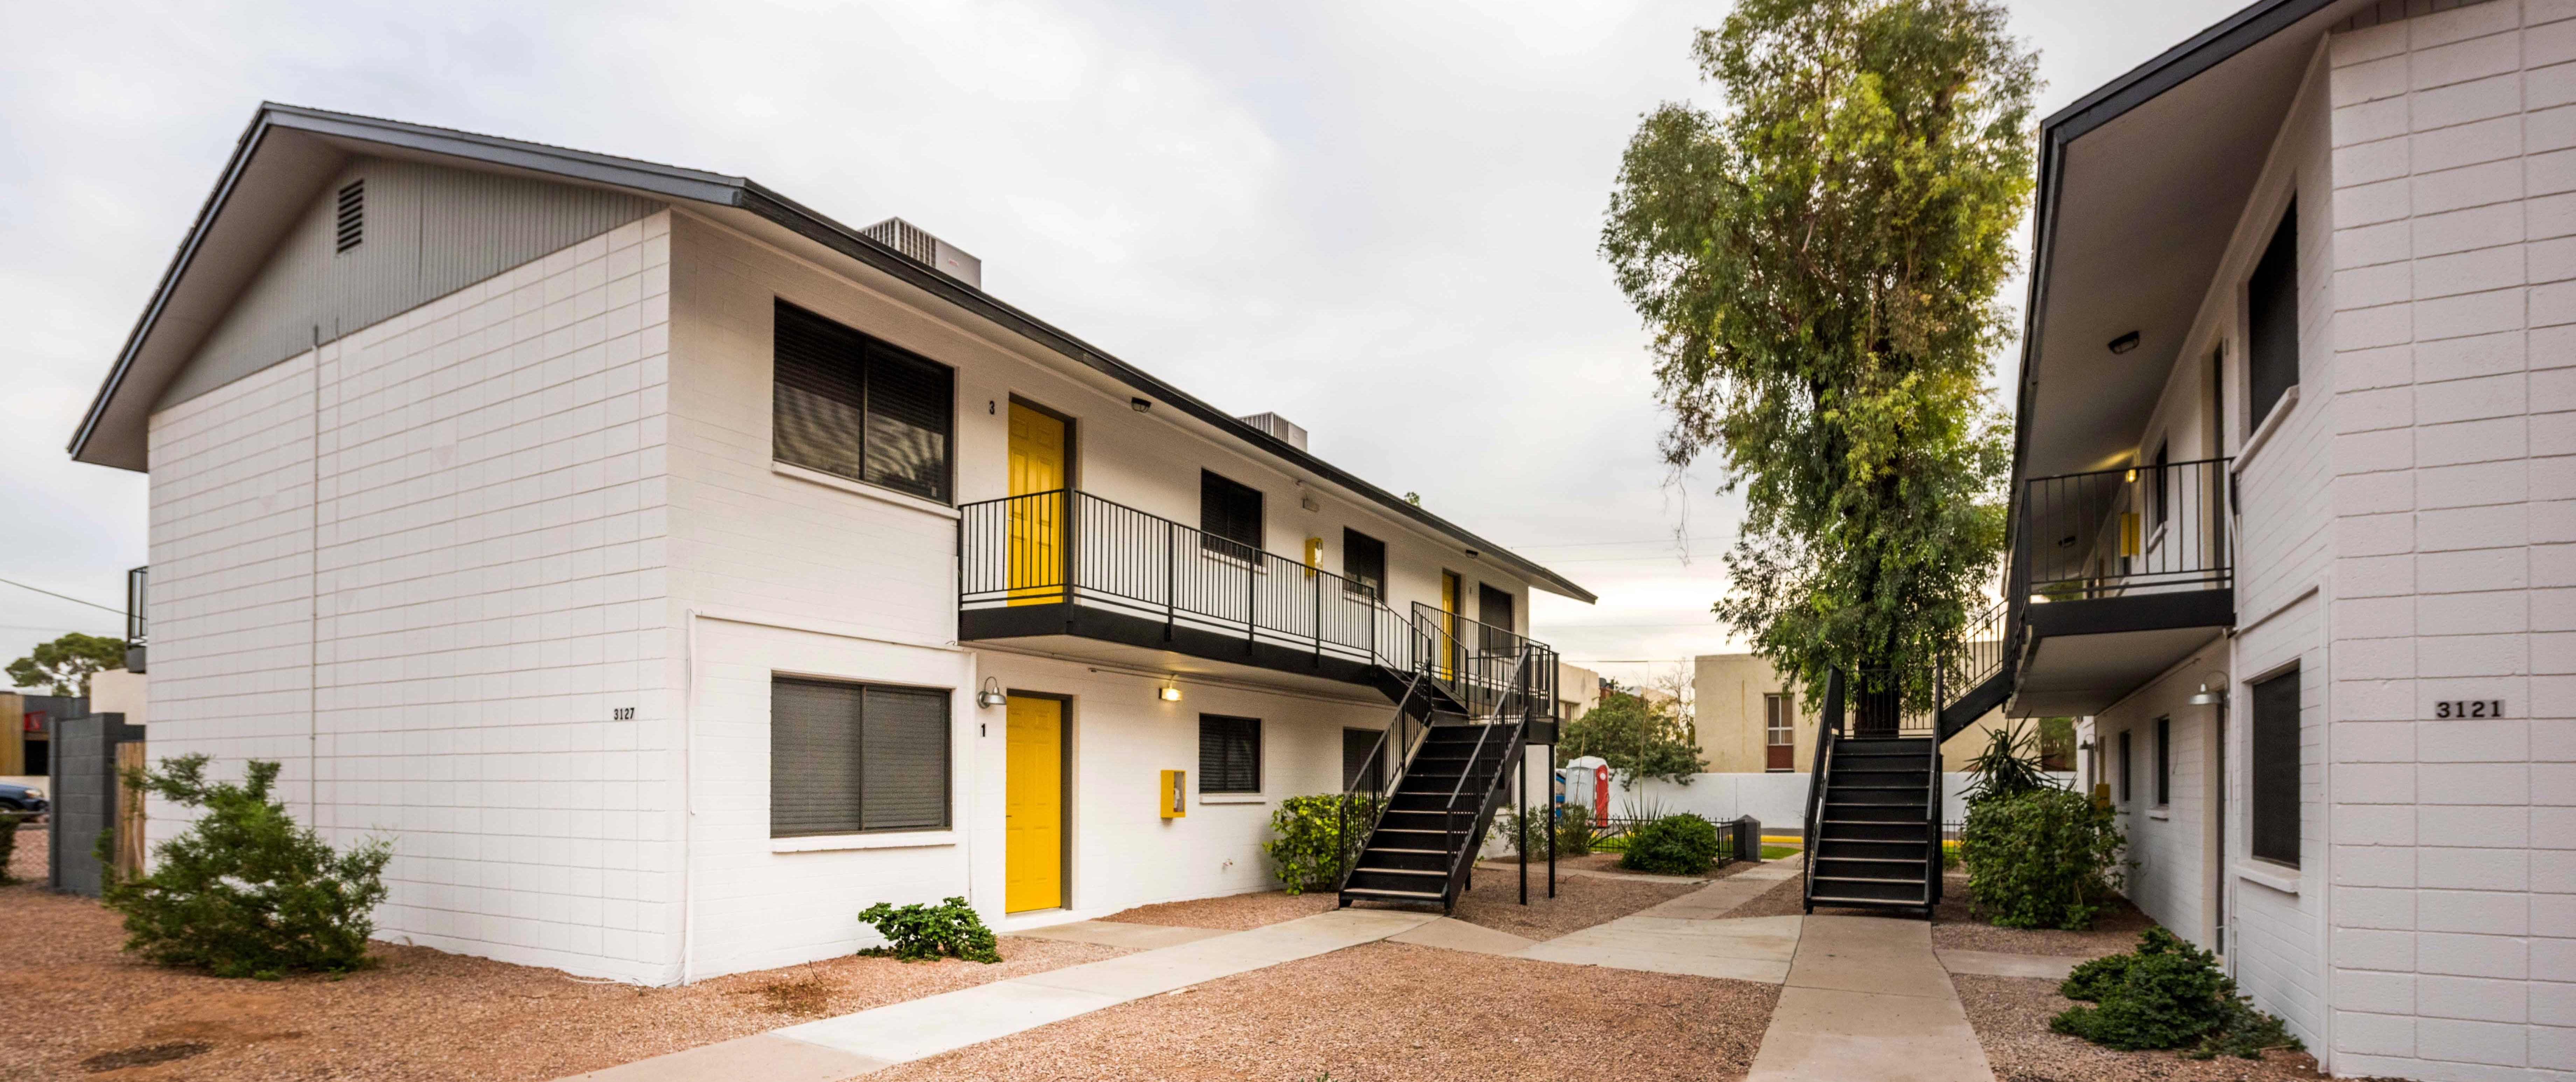 Fairmount 31 Apartments Is A 24 Unit Midcentury Modern Two Story Multifamily Community Located In The Biltmore House Styles Apartment Communities Biltmore